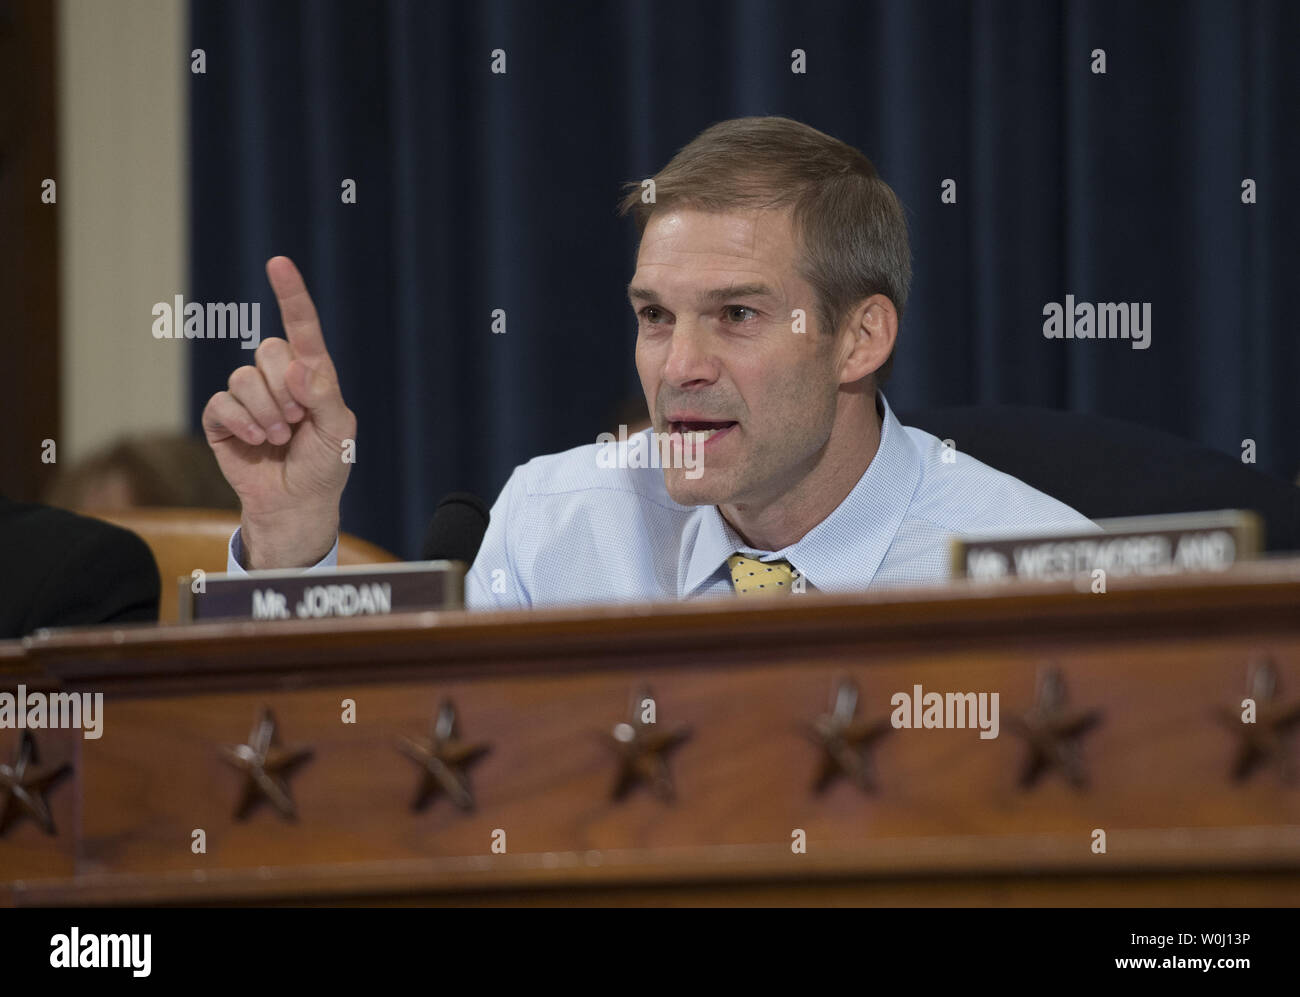 Rep. Jim Jordan, (R-OH), questions former Secretary of State and Democratic presidential hopeful Hillary Clinton as she testifies before the Select Committee on Benghazi on Capitol Hill in Washington DC, October 22, 2015. Clinton appears in a long-awaited appearance to answer questions about the 2012 deadly attack on the U.S. diplomatic mission in Benghazi, Libya. Photo by Molly Riley/UPI - Stock Image